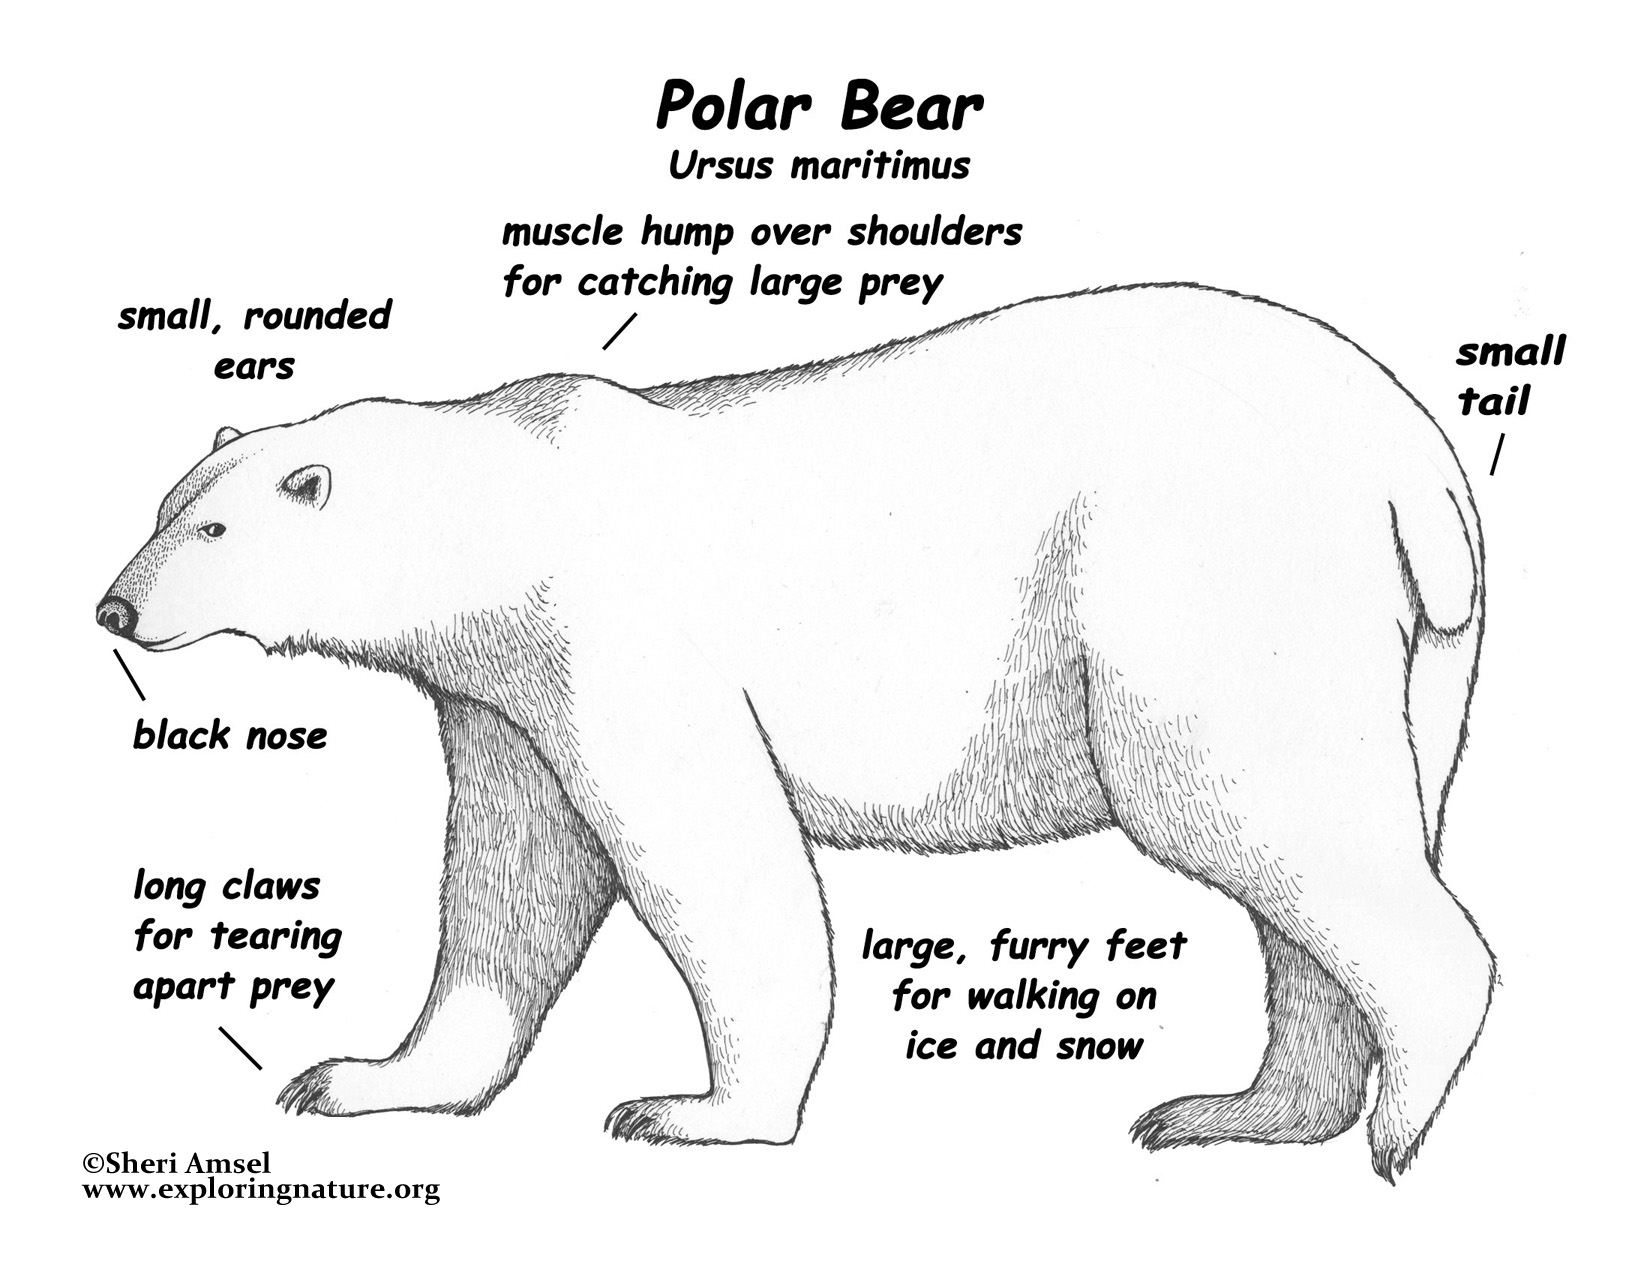 Polar Bear Internal Anatomy